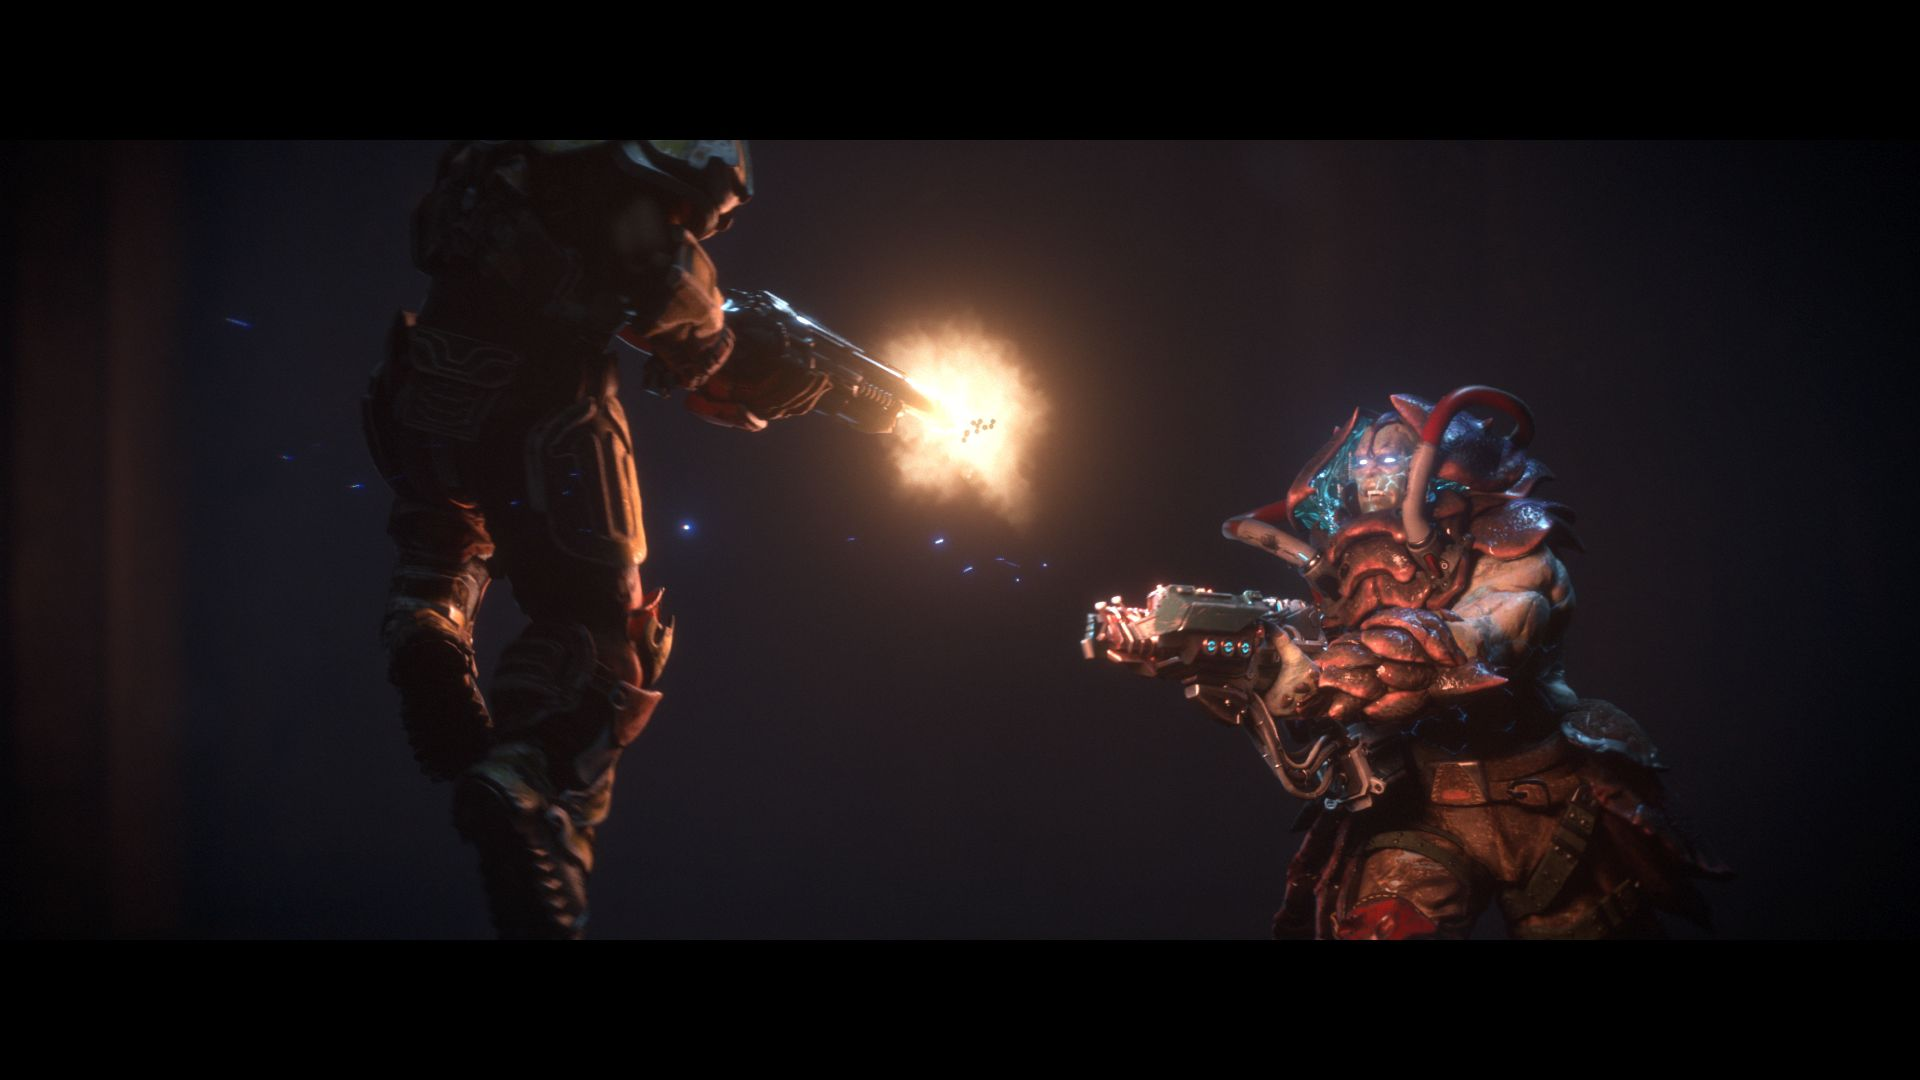 action shot e3 announce trailer Check Out Quake Champions First Gameplay Trailer